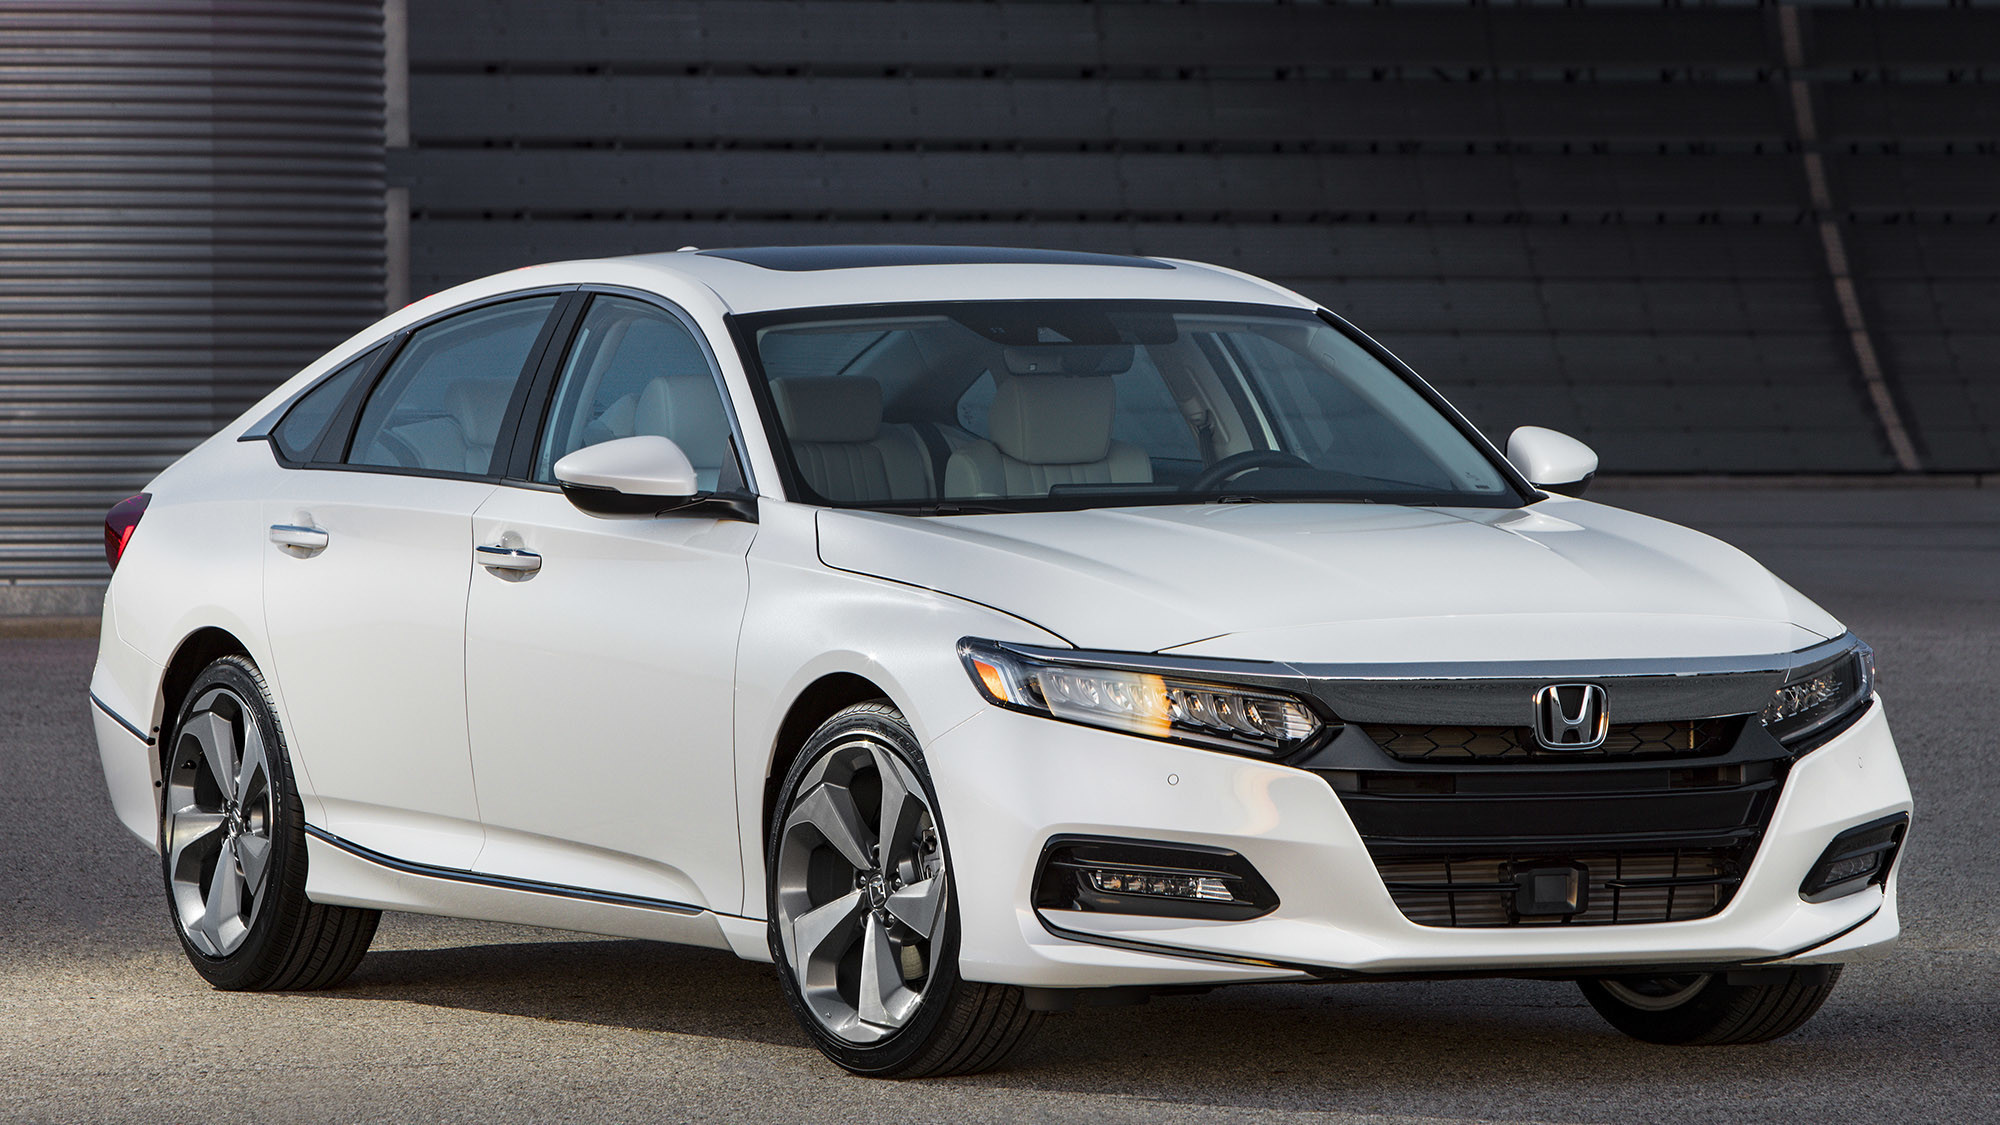 Honda sports up its sedan line with the 2018 Accord